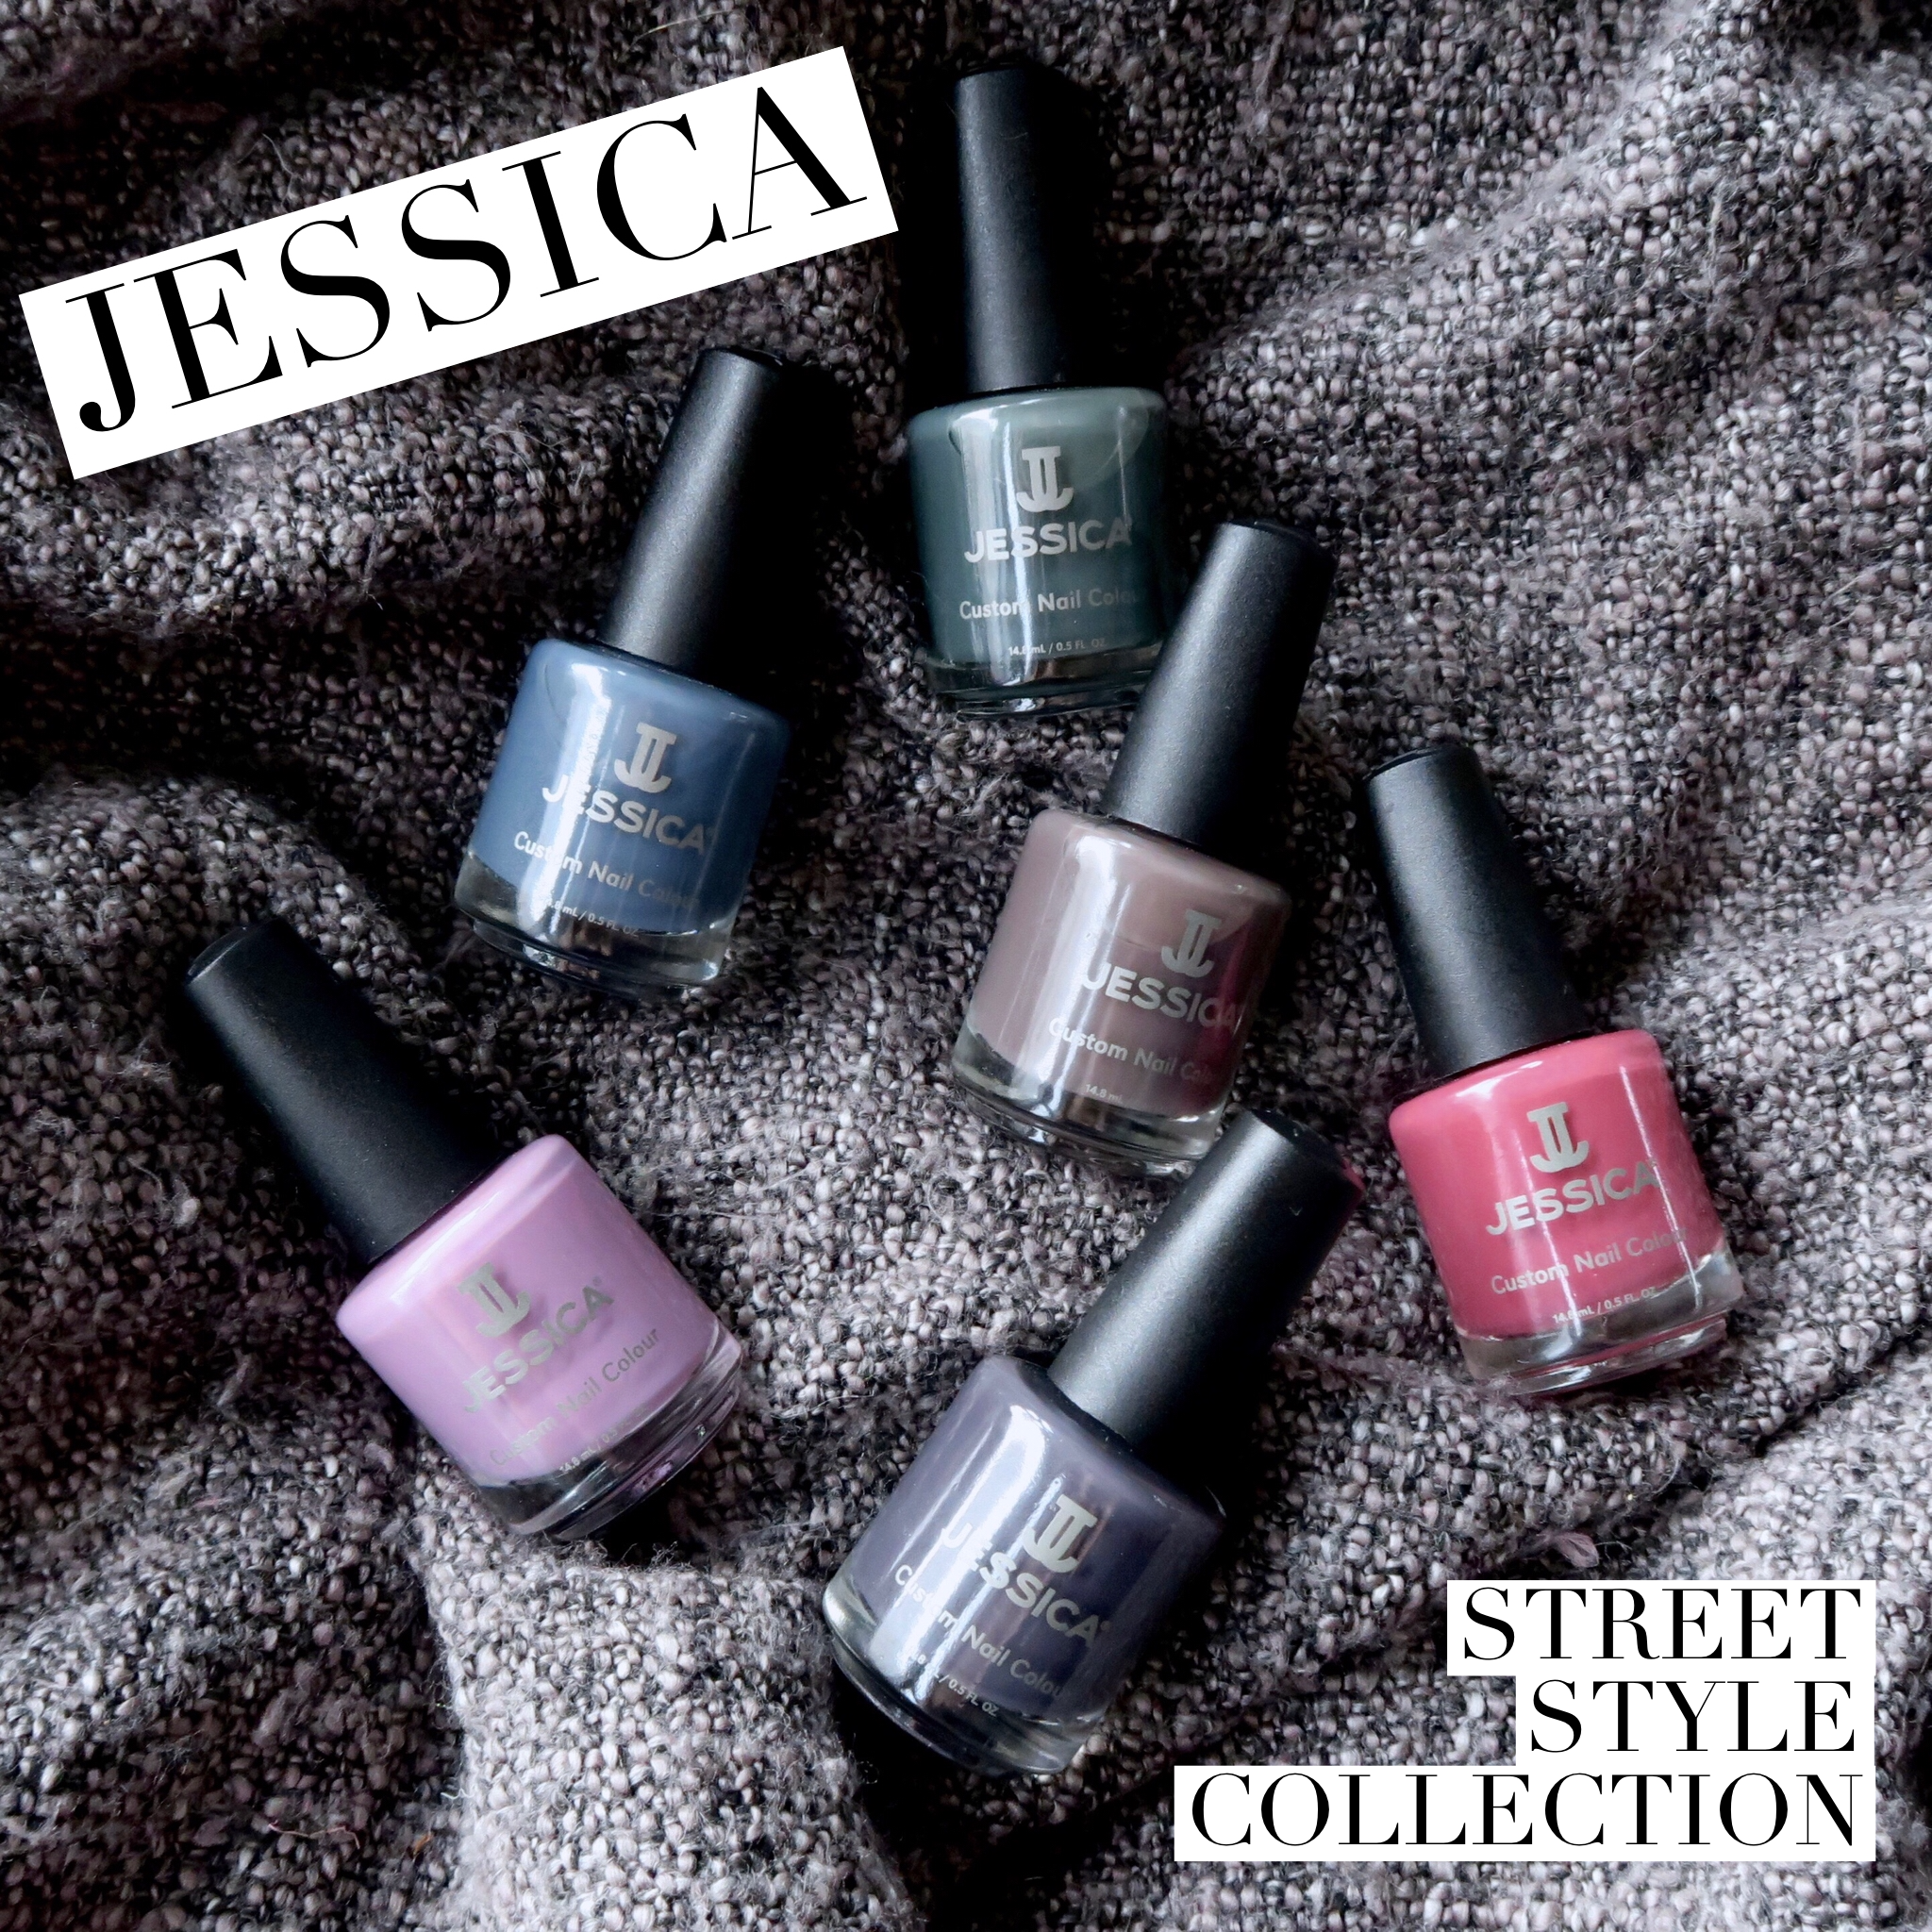 Jessica Street Style, A/W collection